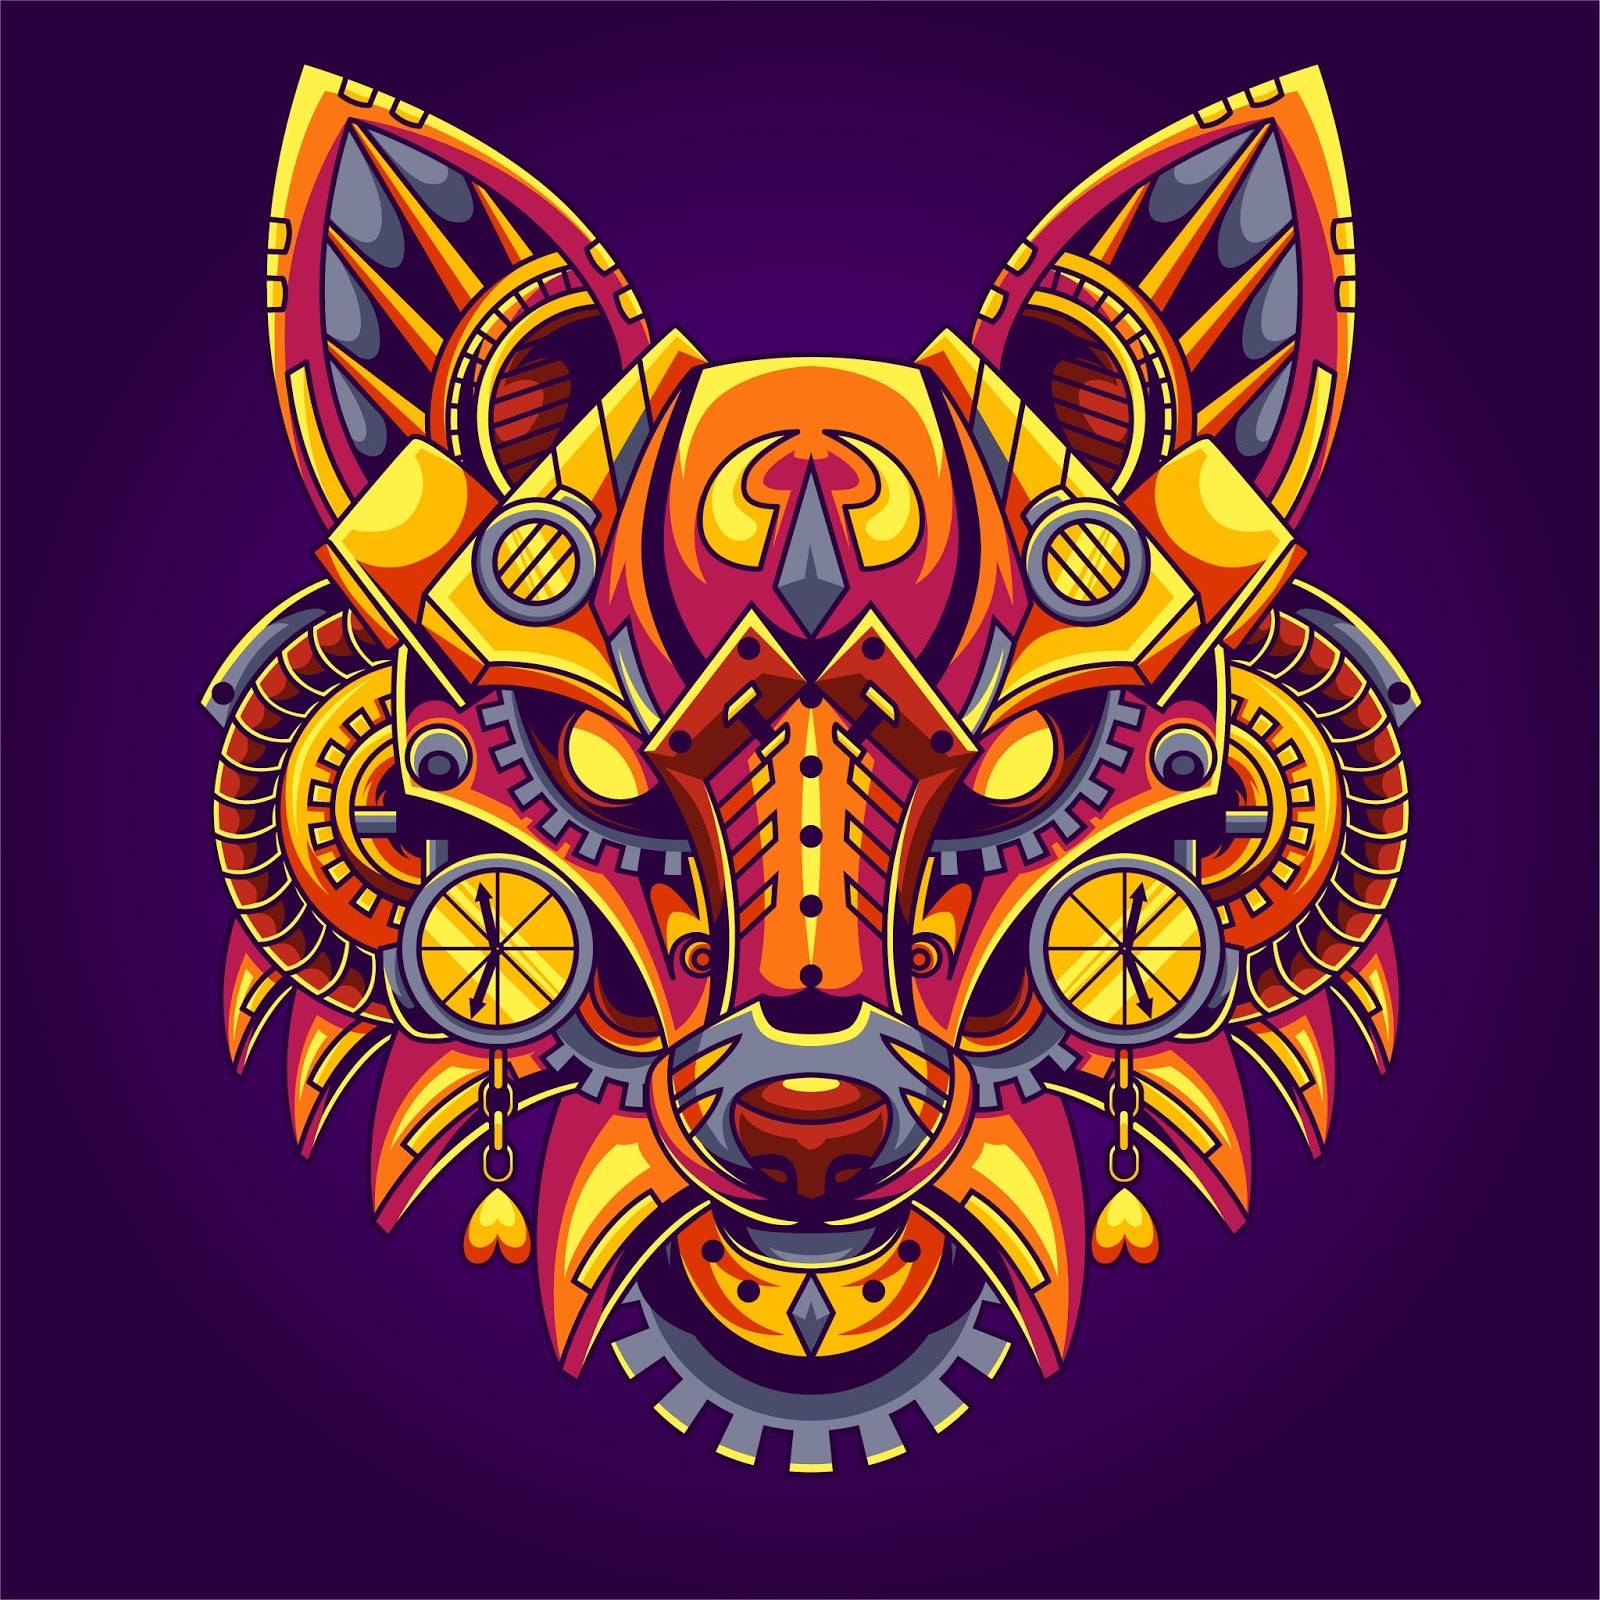 Fox Steampunk Illustration	 Free Download Vector CDR, AI, EPS and PNG Formats